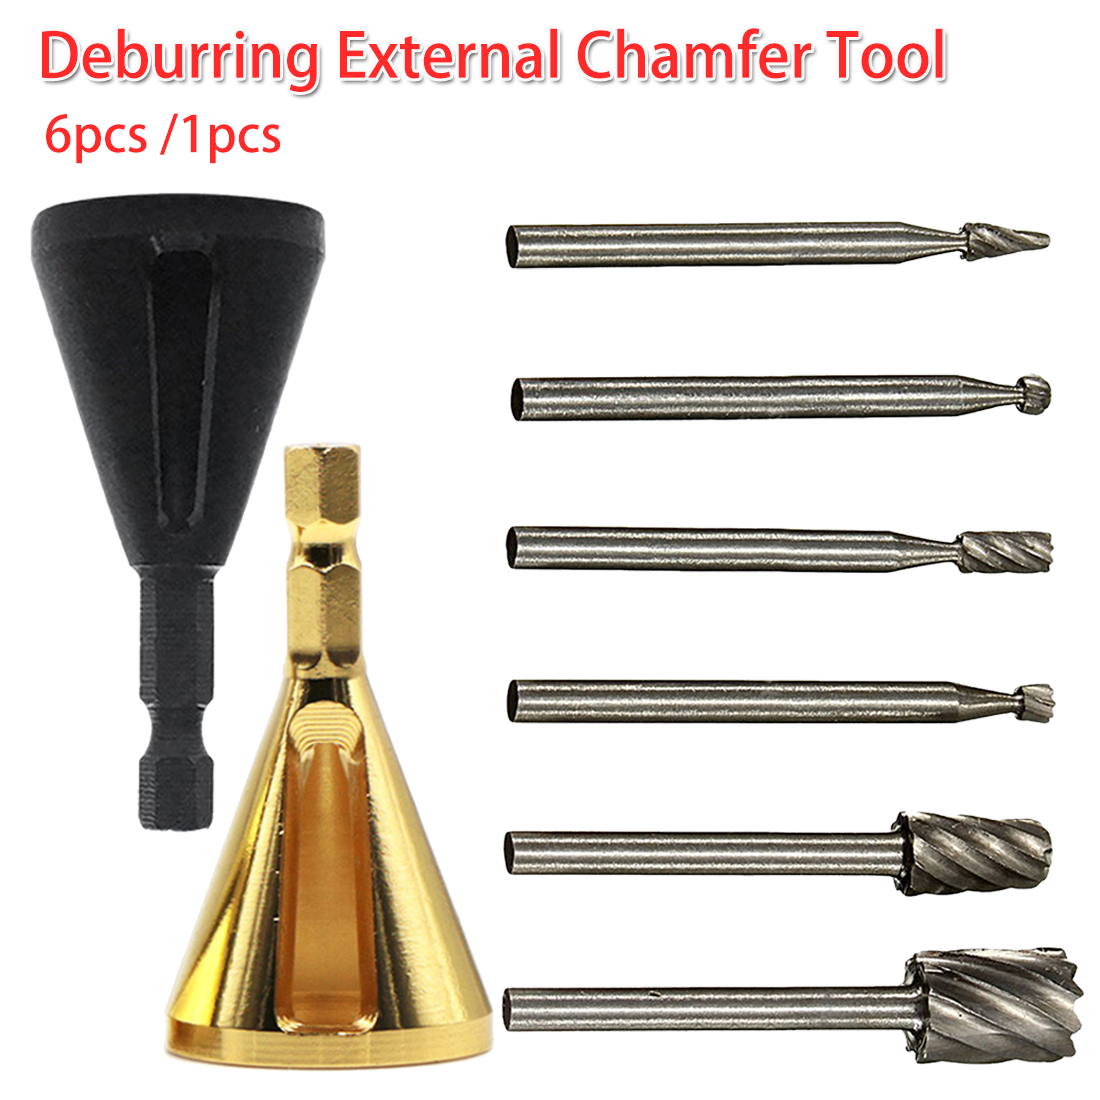 6pcs /1pcs Deburring External Chamfer Tool Bit Hardness Drill Bit Stainless Steel Remove Burr Multifunction Drill Removing Burr